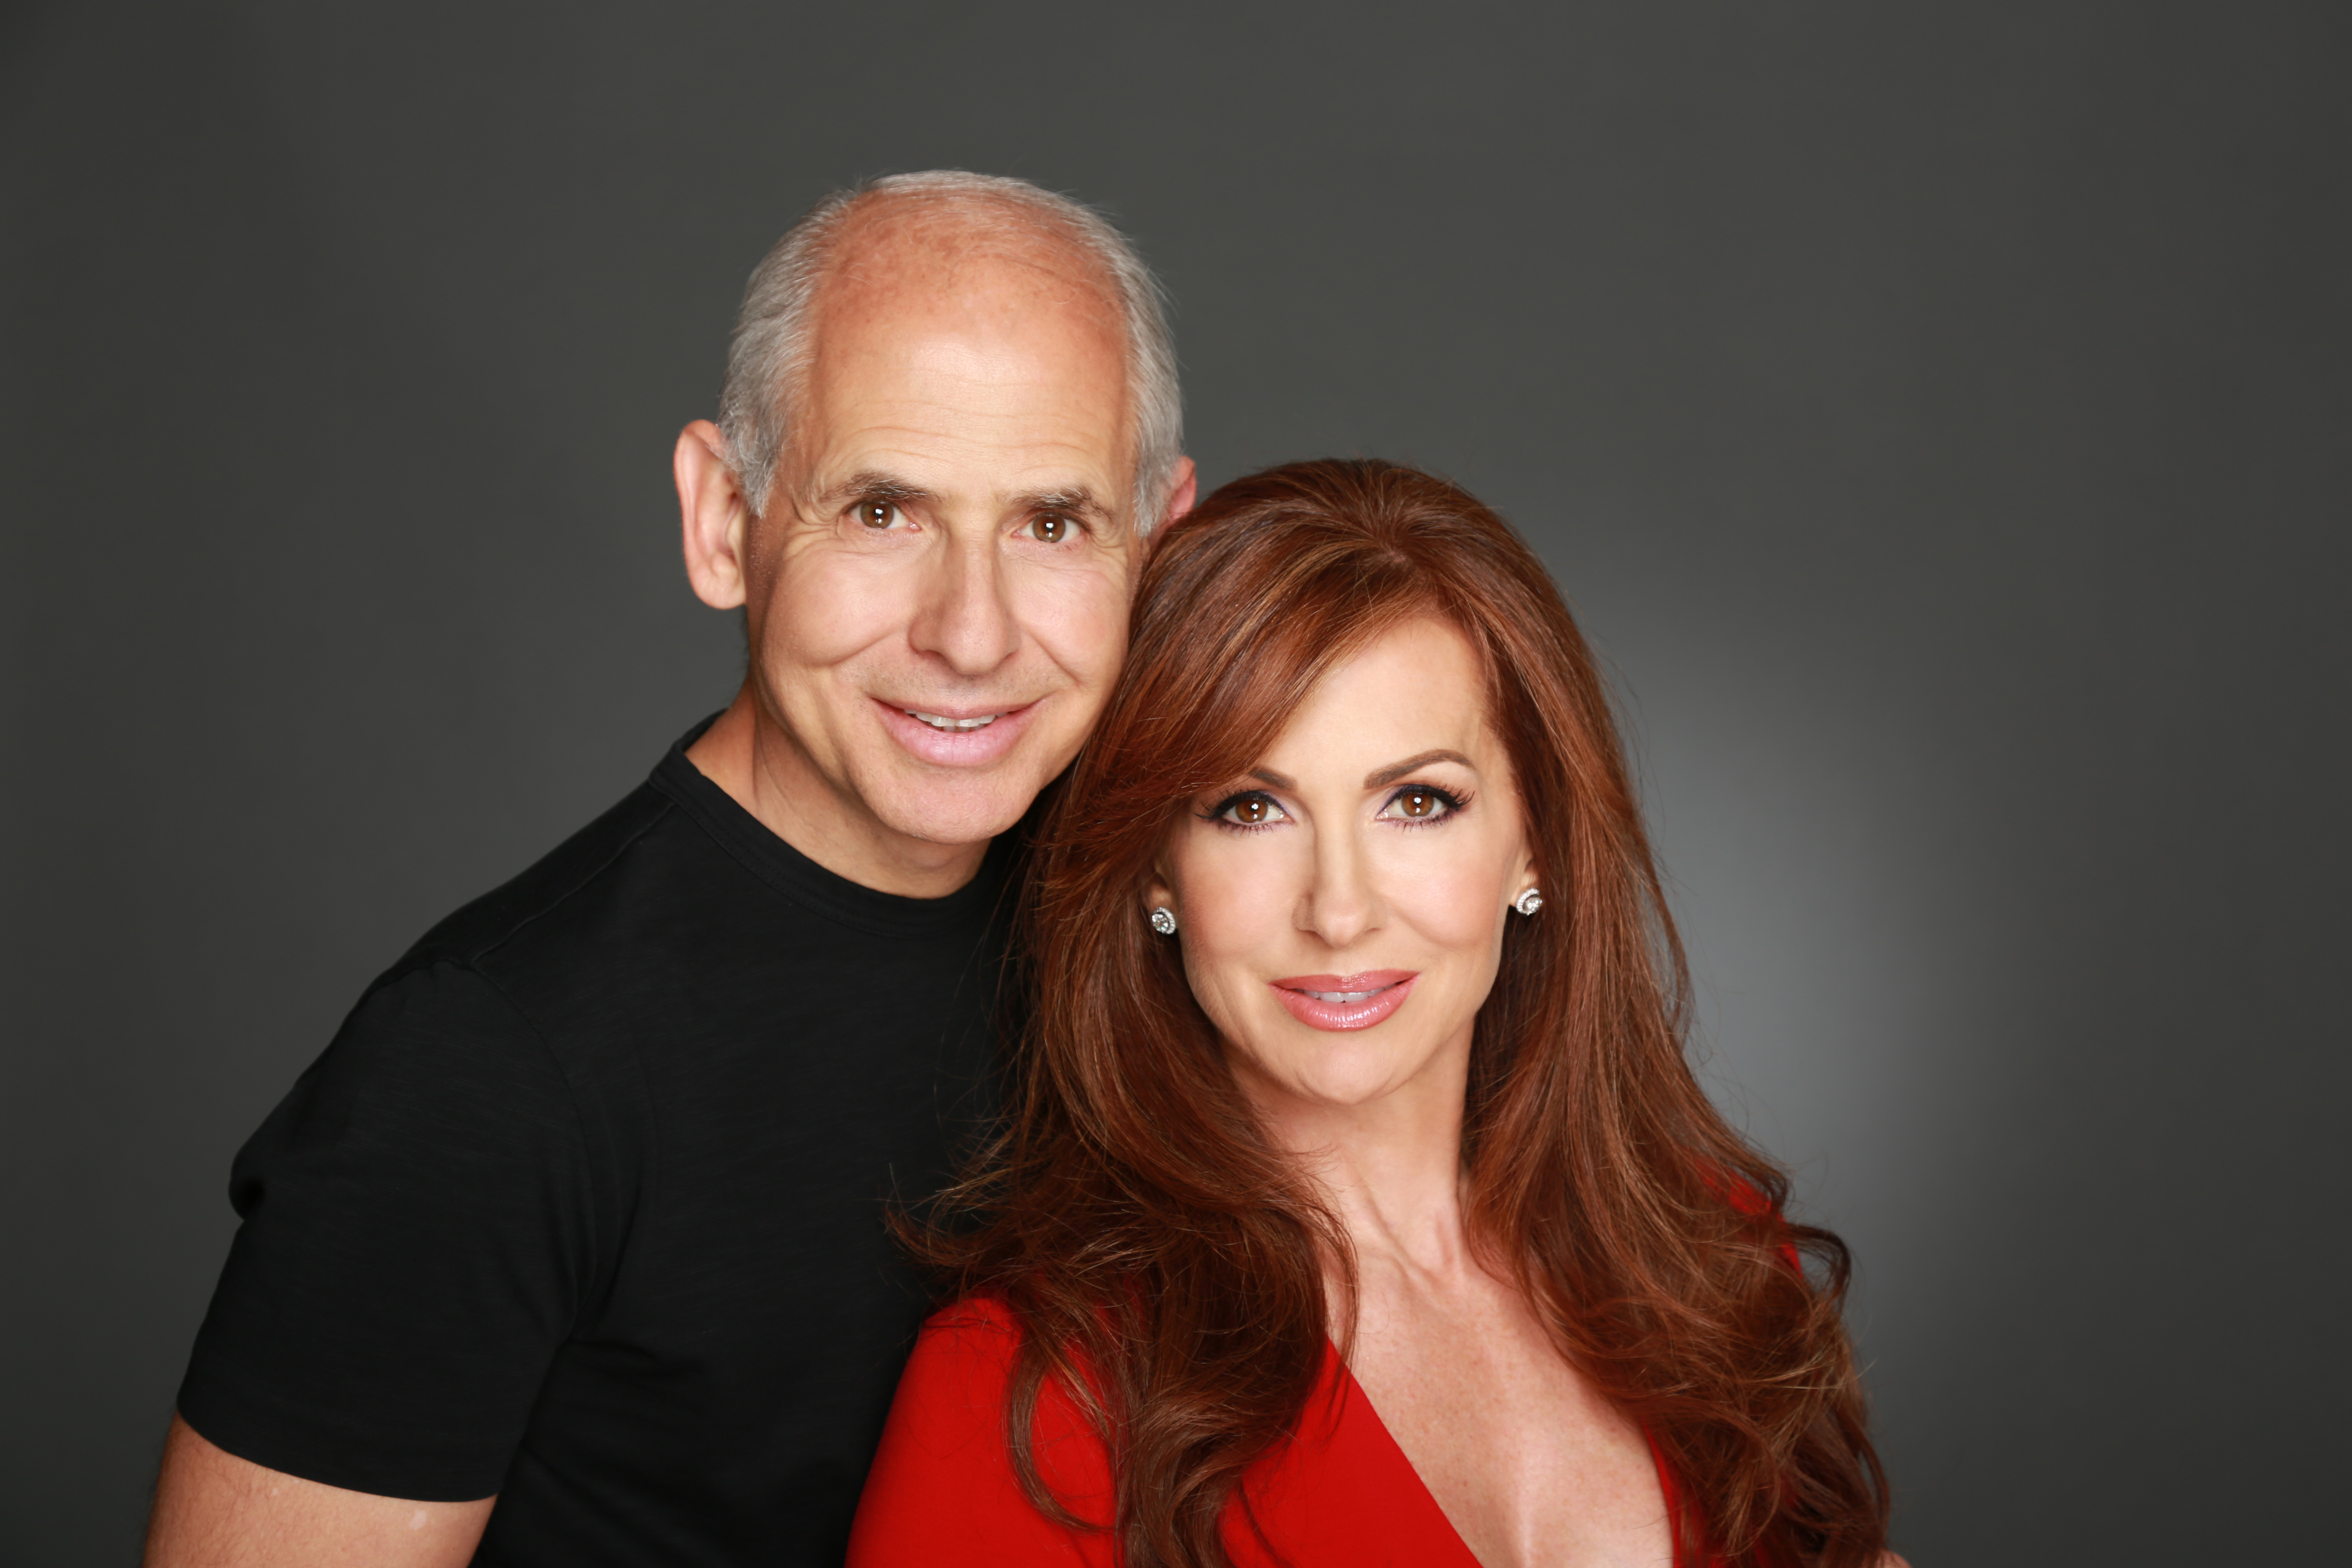 Dr. Daniel Amen and his wife